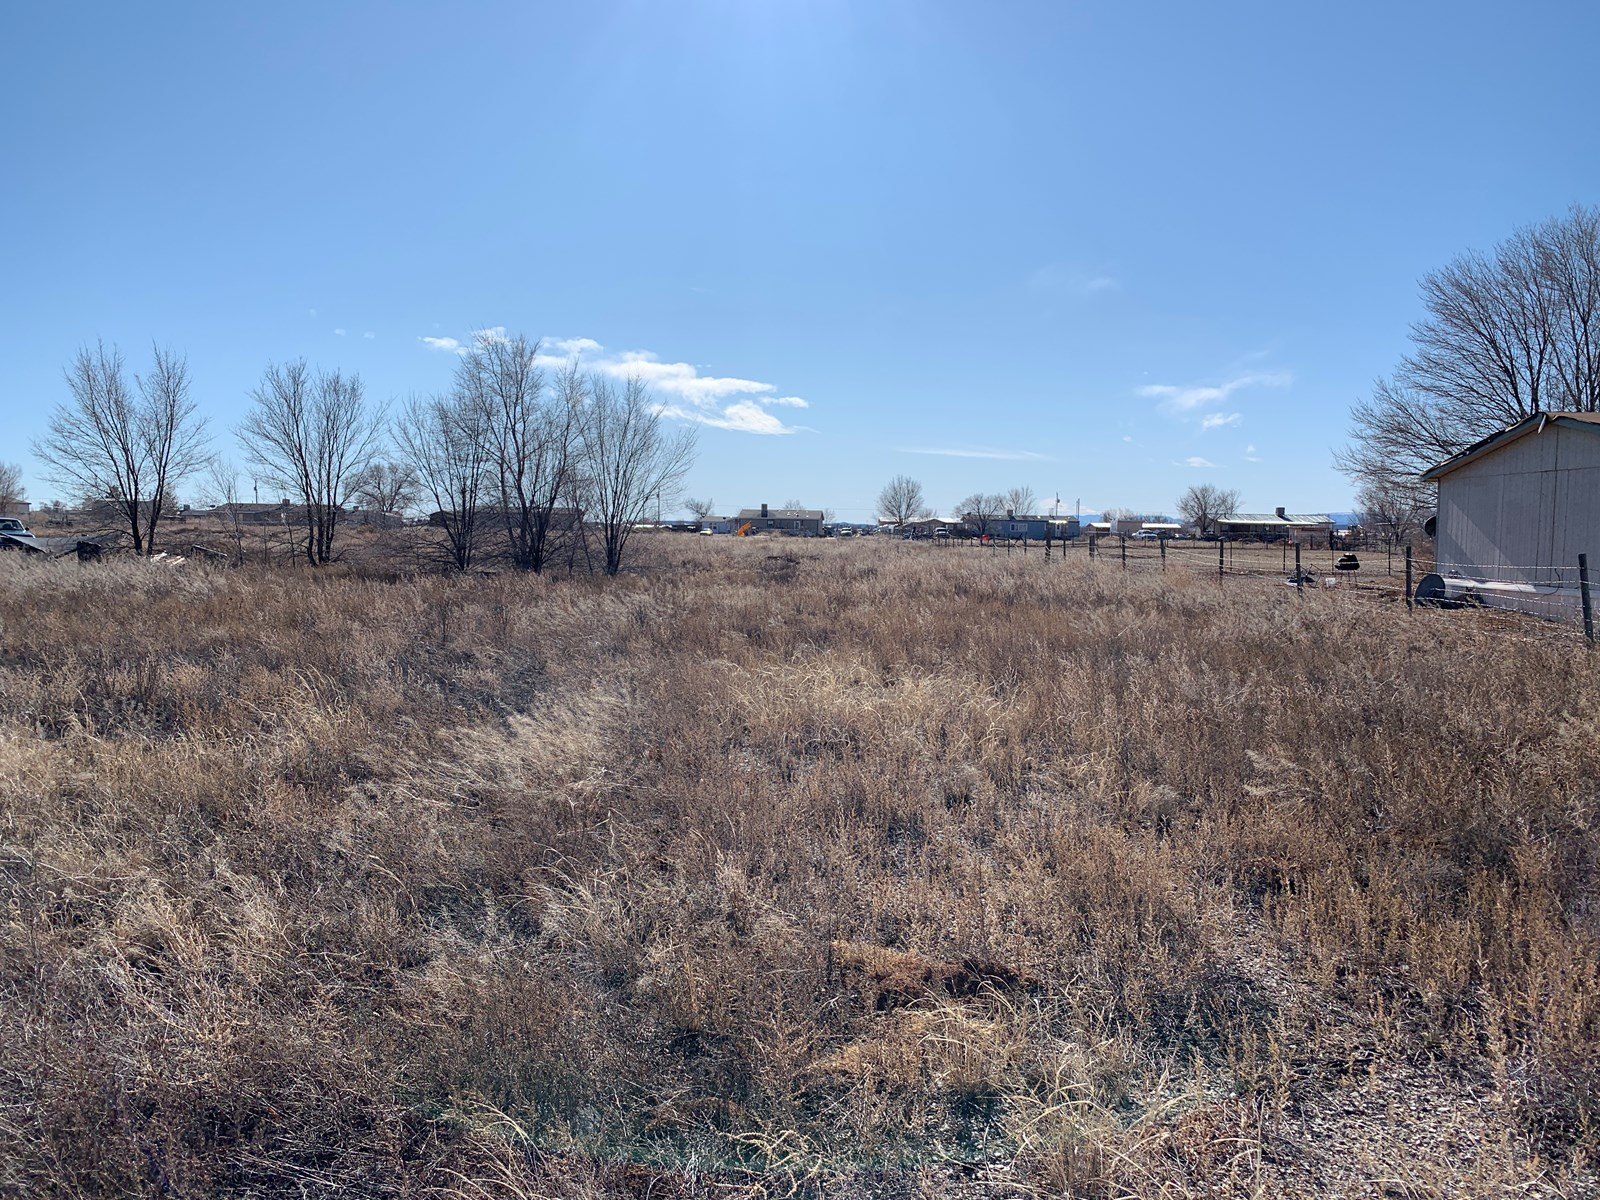 For sale vacant lot in Sunset Acres near Moriarty NM